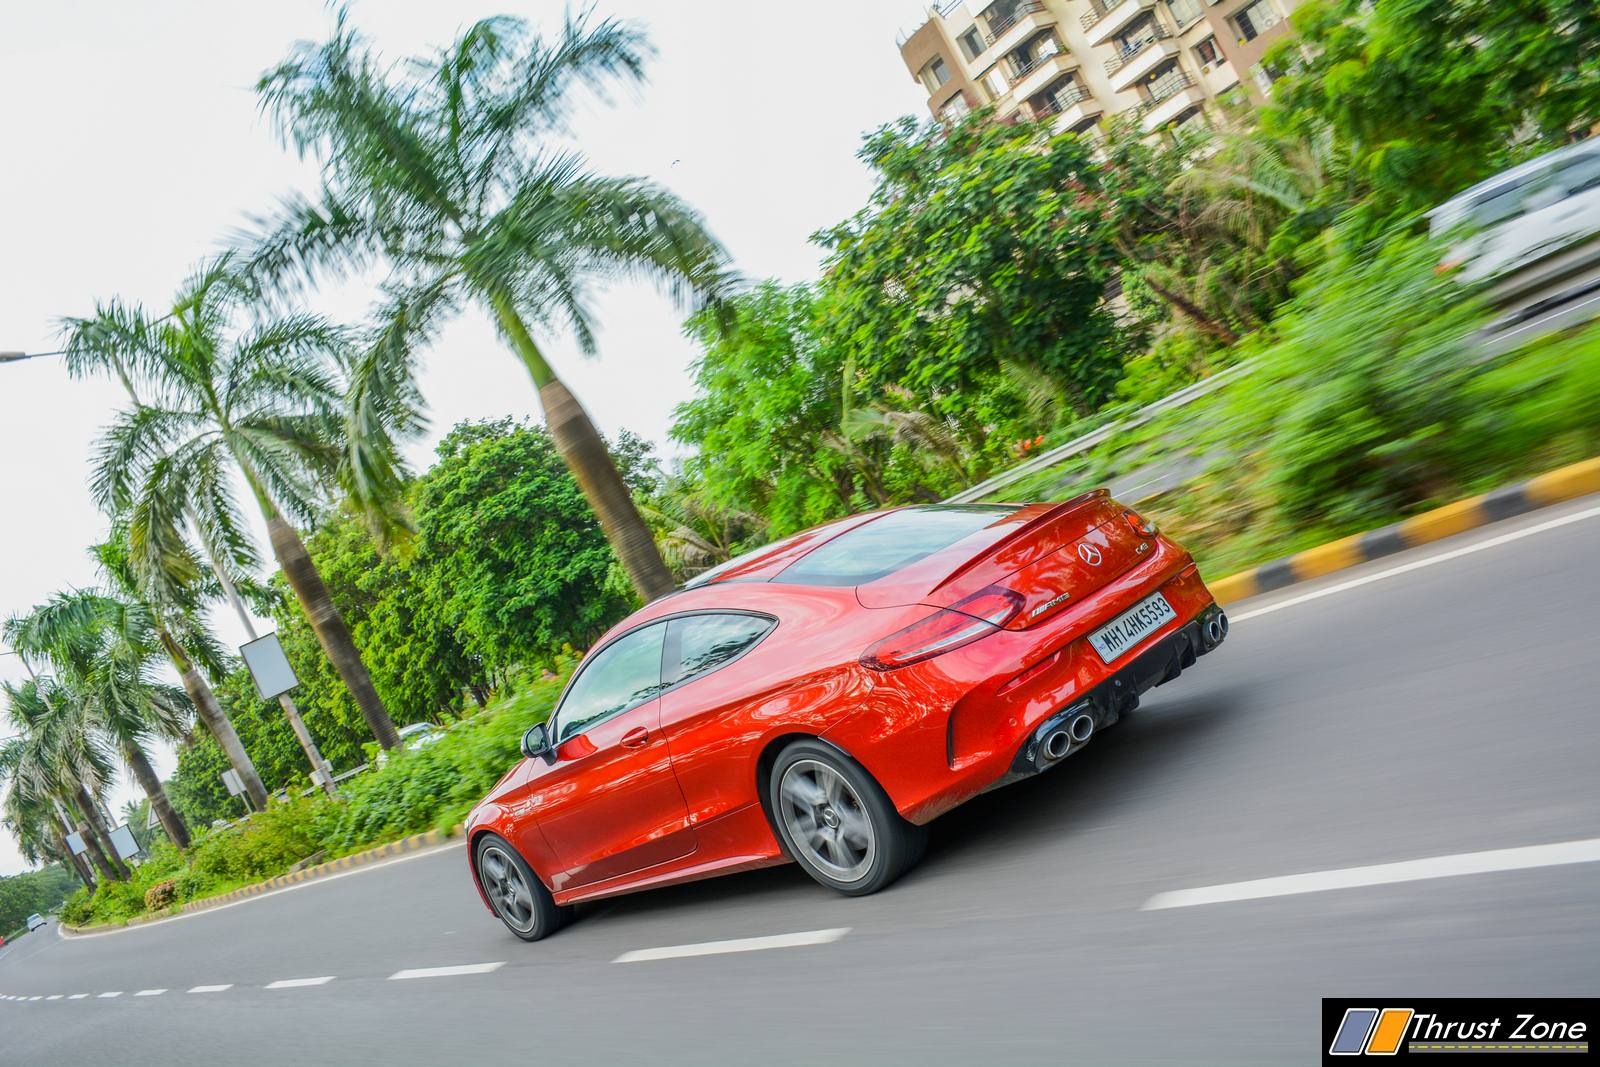 2019-Mercedes-C43-AMG-India-Review-4